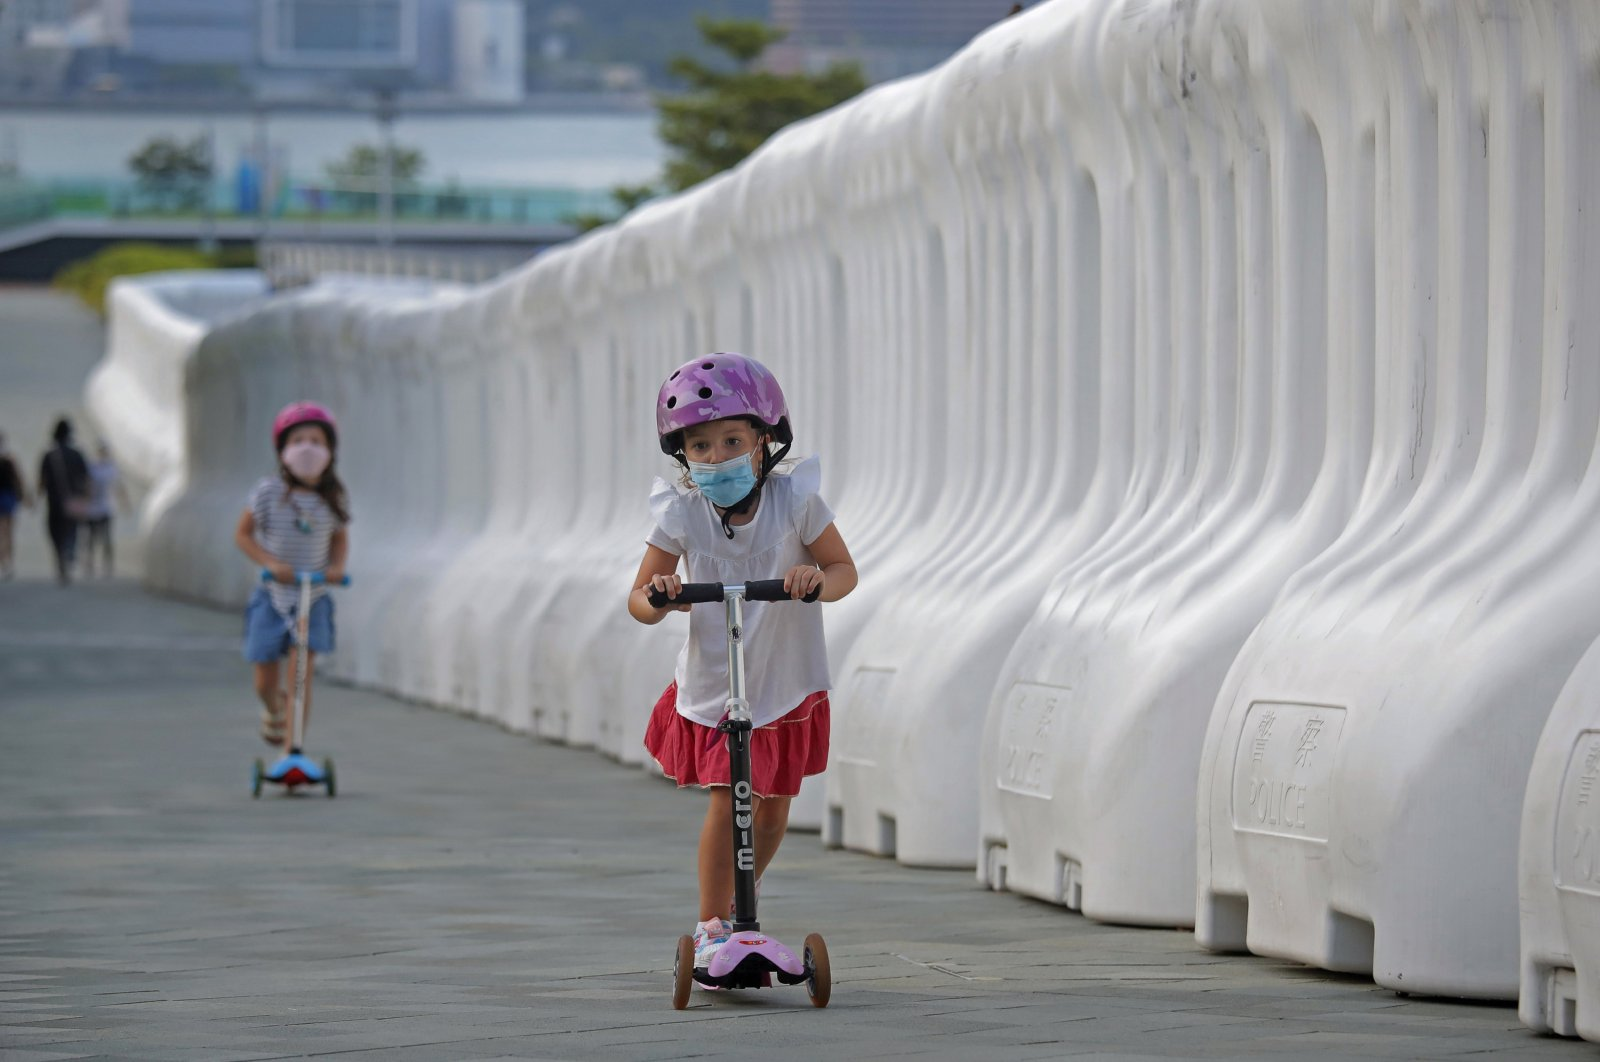 Kids wearing masks to protect against the coronavirus, play beside the water-filled barriers outside the Hong Kong Government Office in Hong Kong, Thursday, Aug. 20, 2020. (AP Photo)